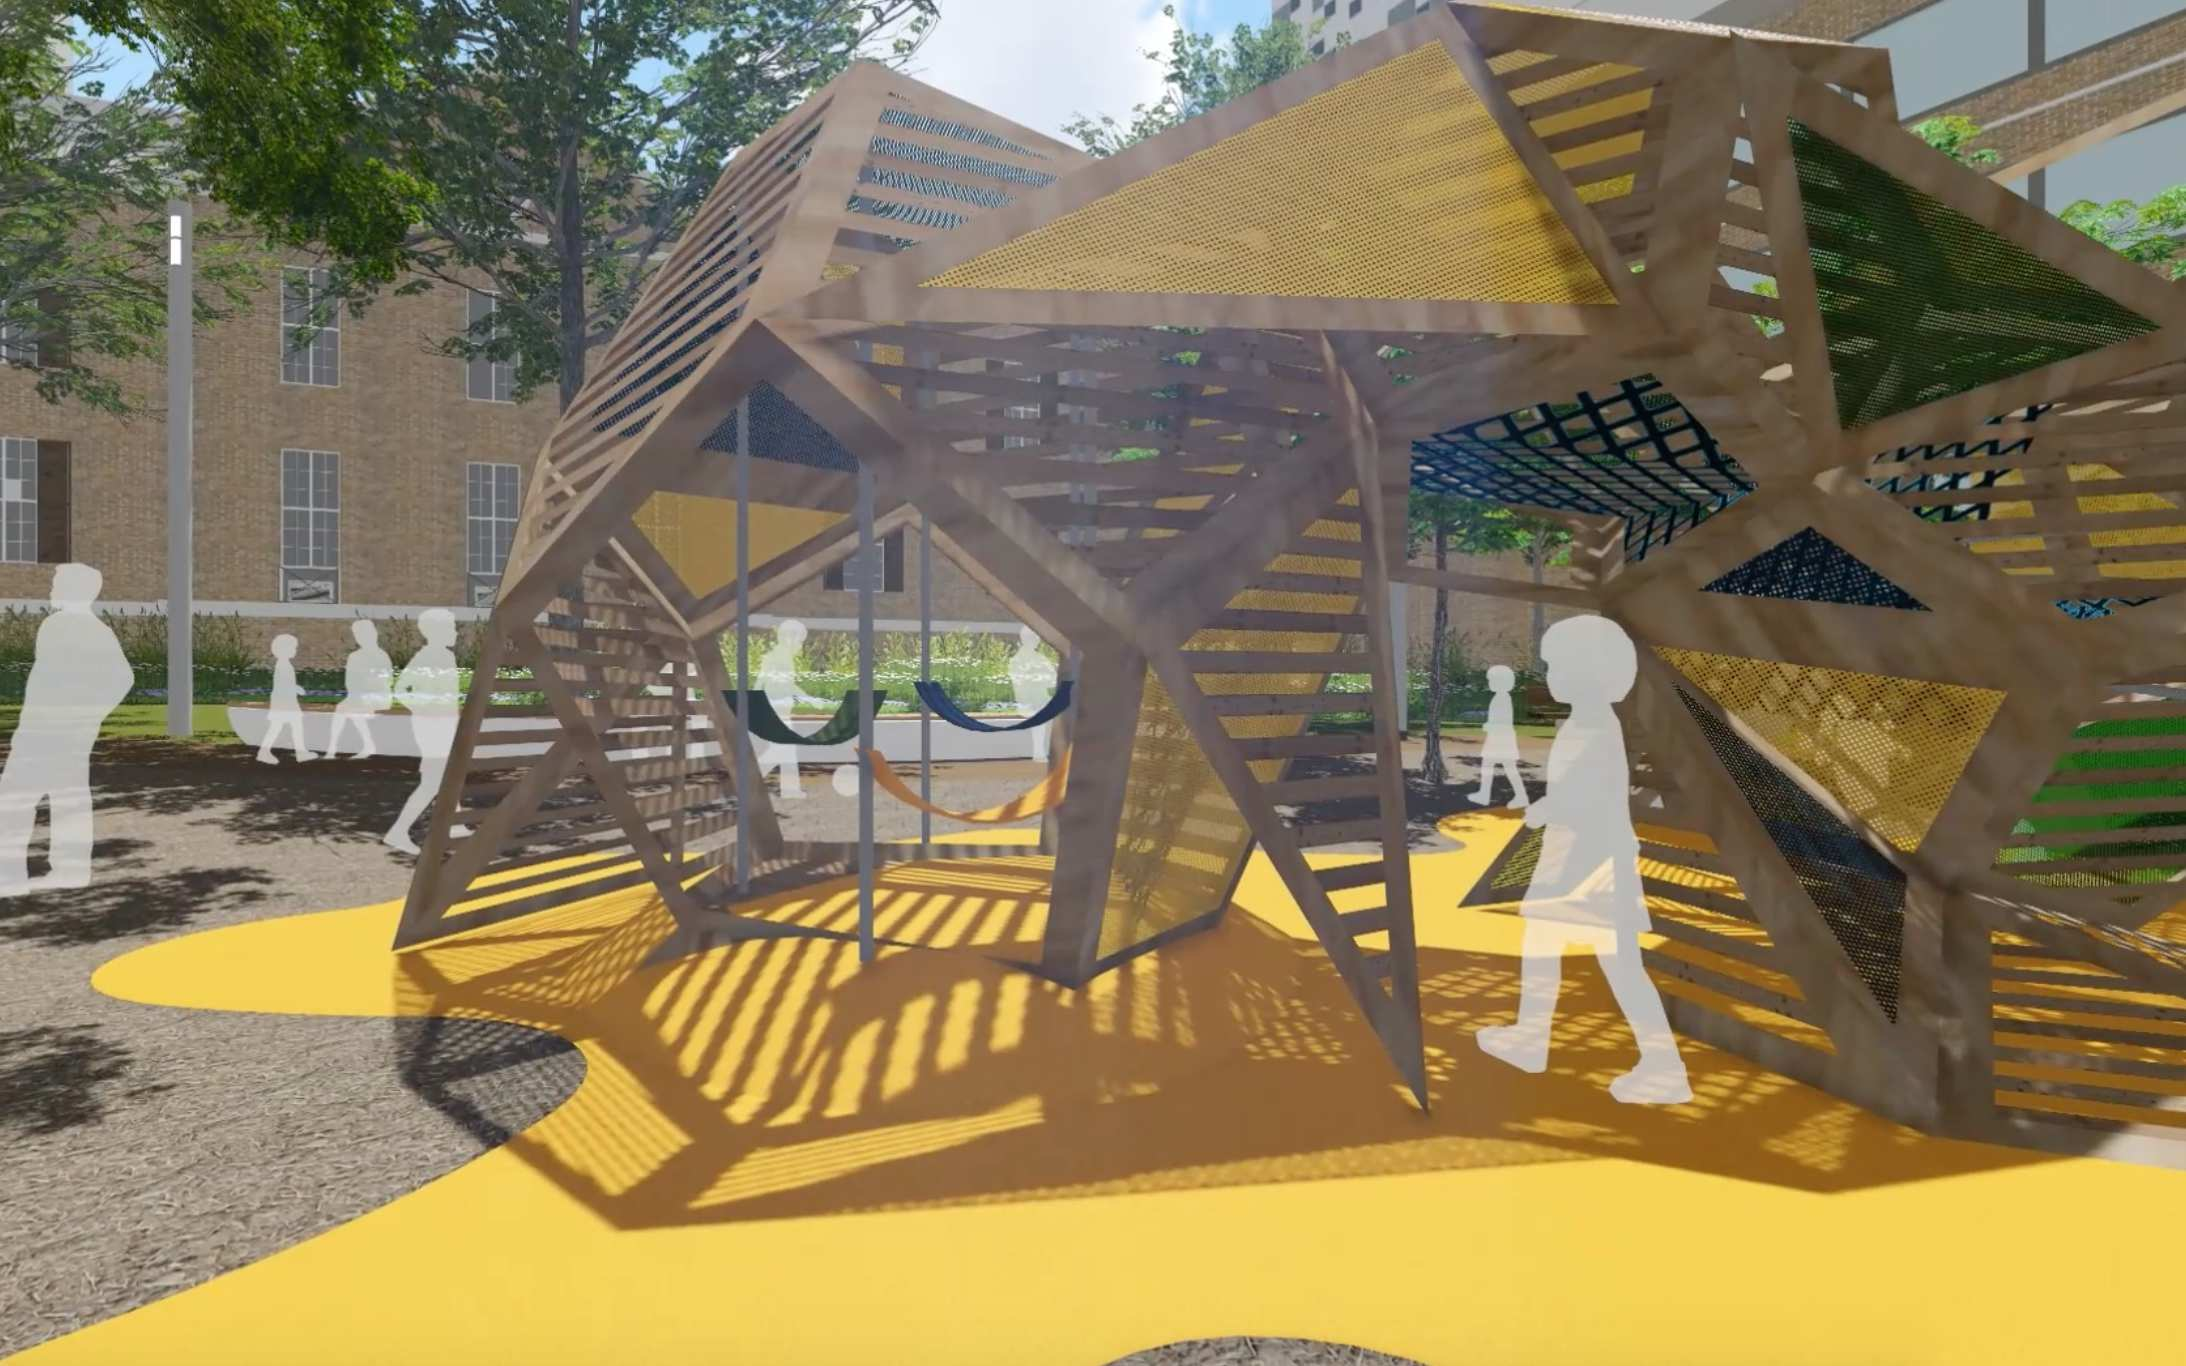 planning a playground video Imagination playground provides an innovative play opportunity that can be  watch the video above to see the power of imagination playground™ and check out our.